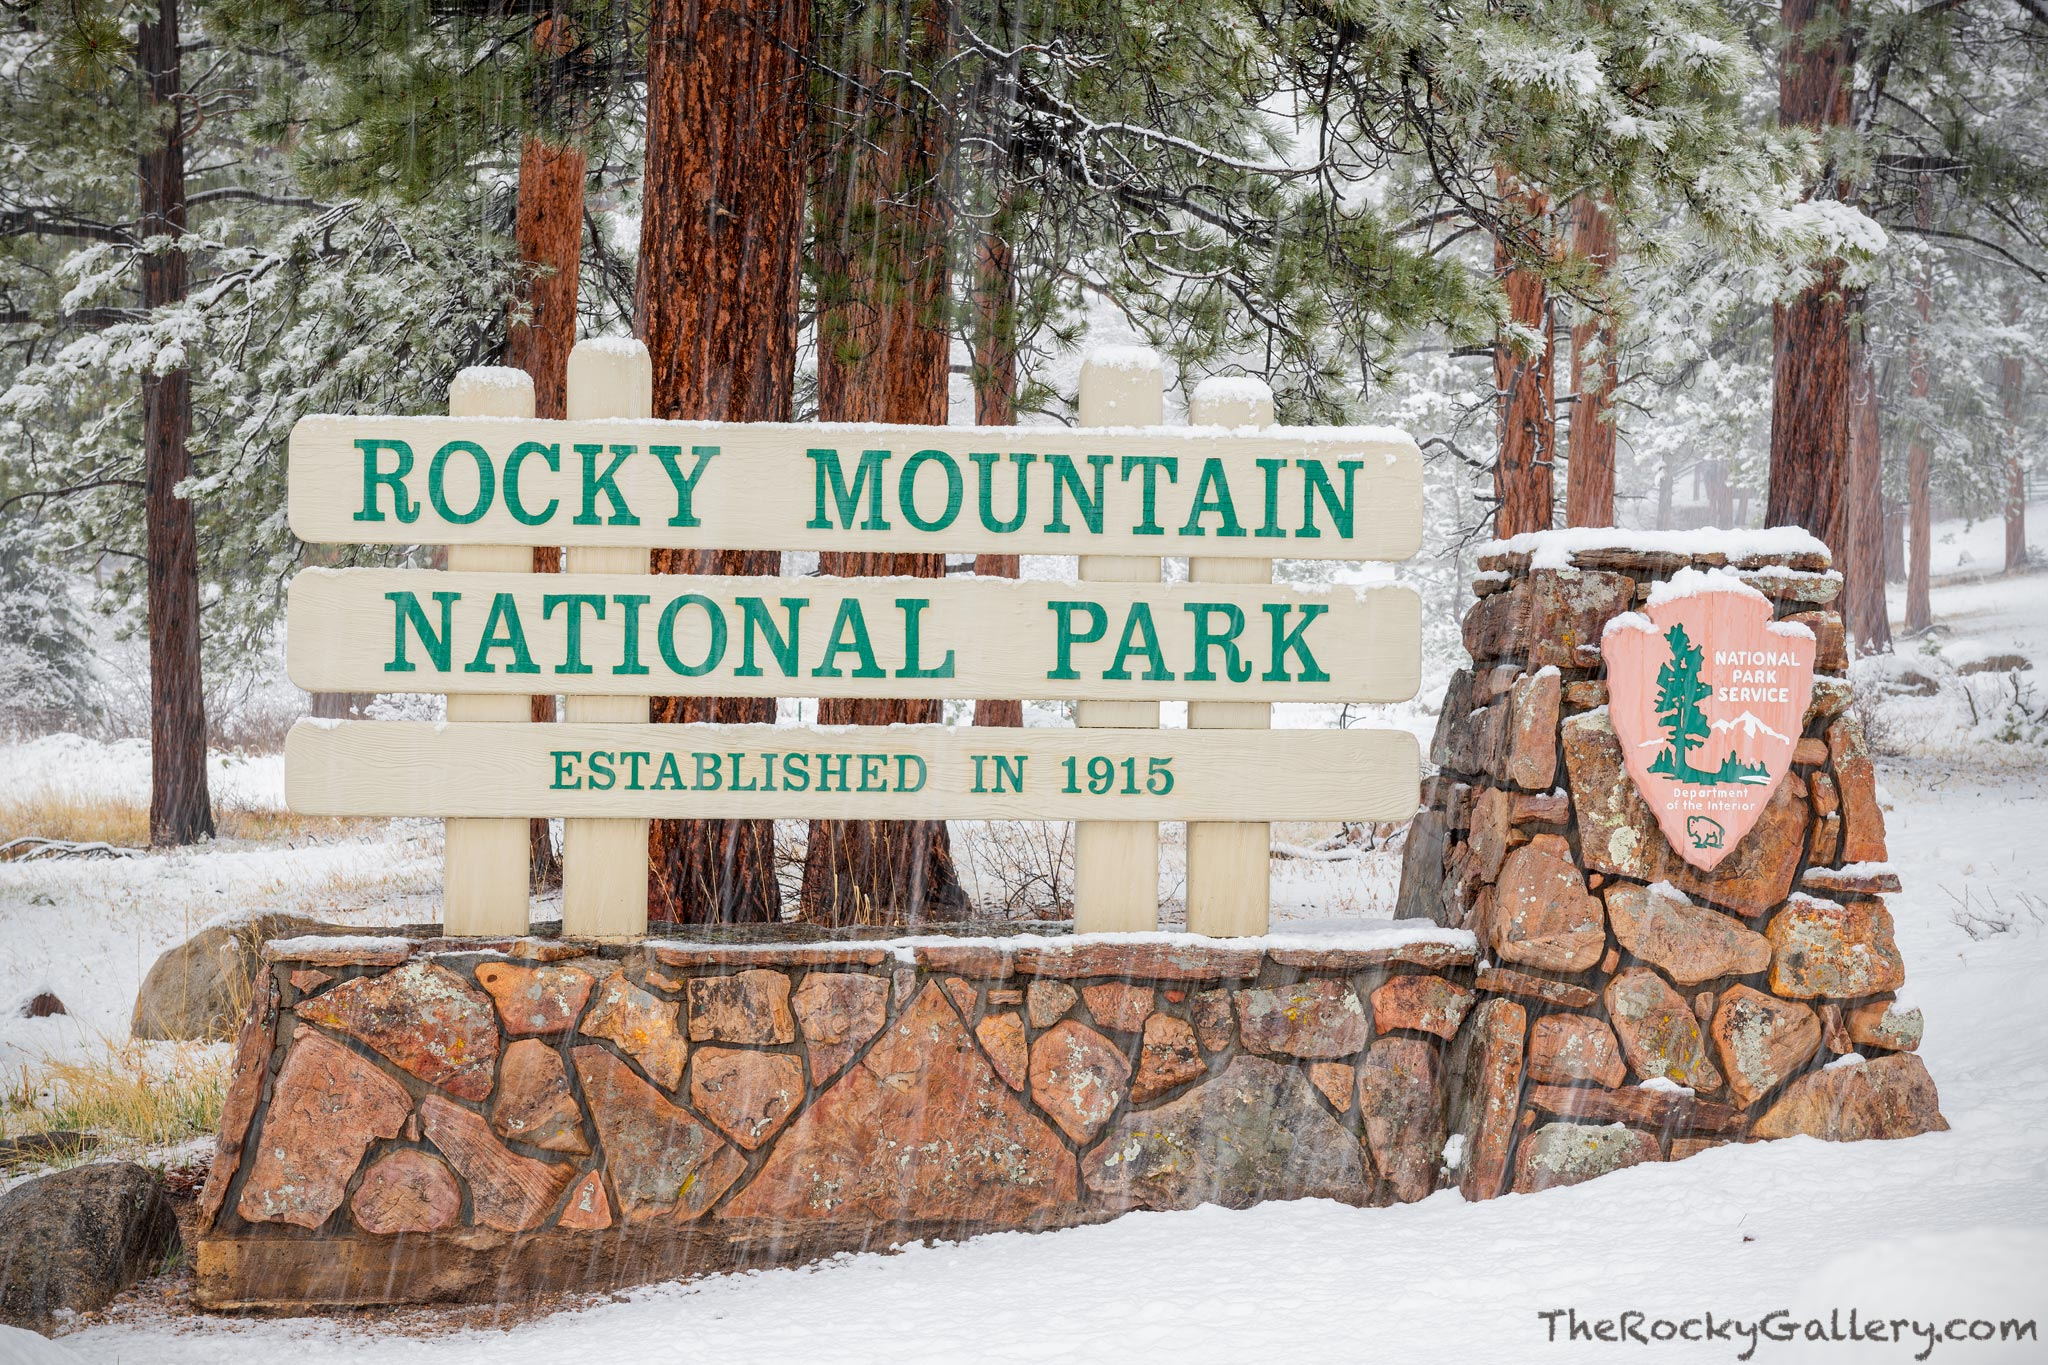 May,Spring,Snow,Fall River Road,Rocky Mountain National Park,Entry Sign,Estes Park,Fall River Entry,Colorado,RMNP,Entry Station,Snow,Ponderosa Pine,Mission 66,NPS,National Park Service, photo